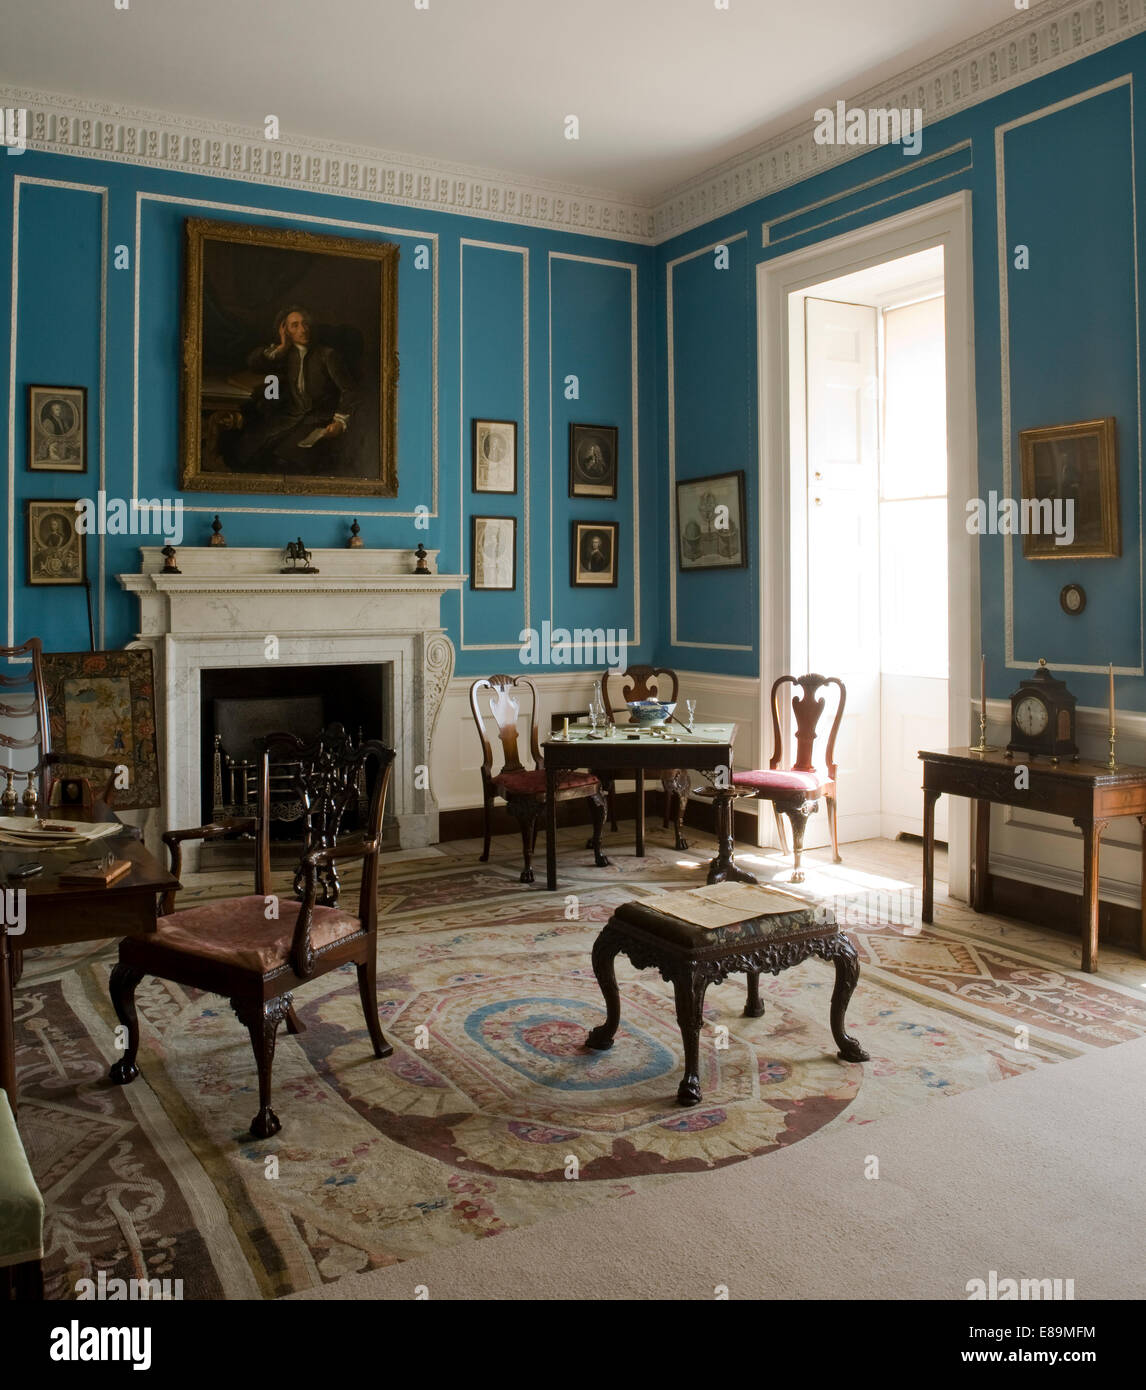 Antique Furniture In Blue Country House Drawing Room With Antique Furniture